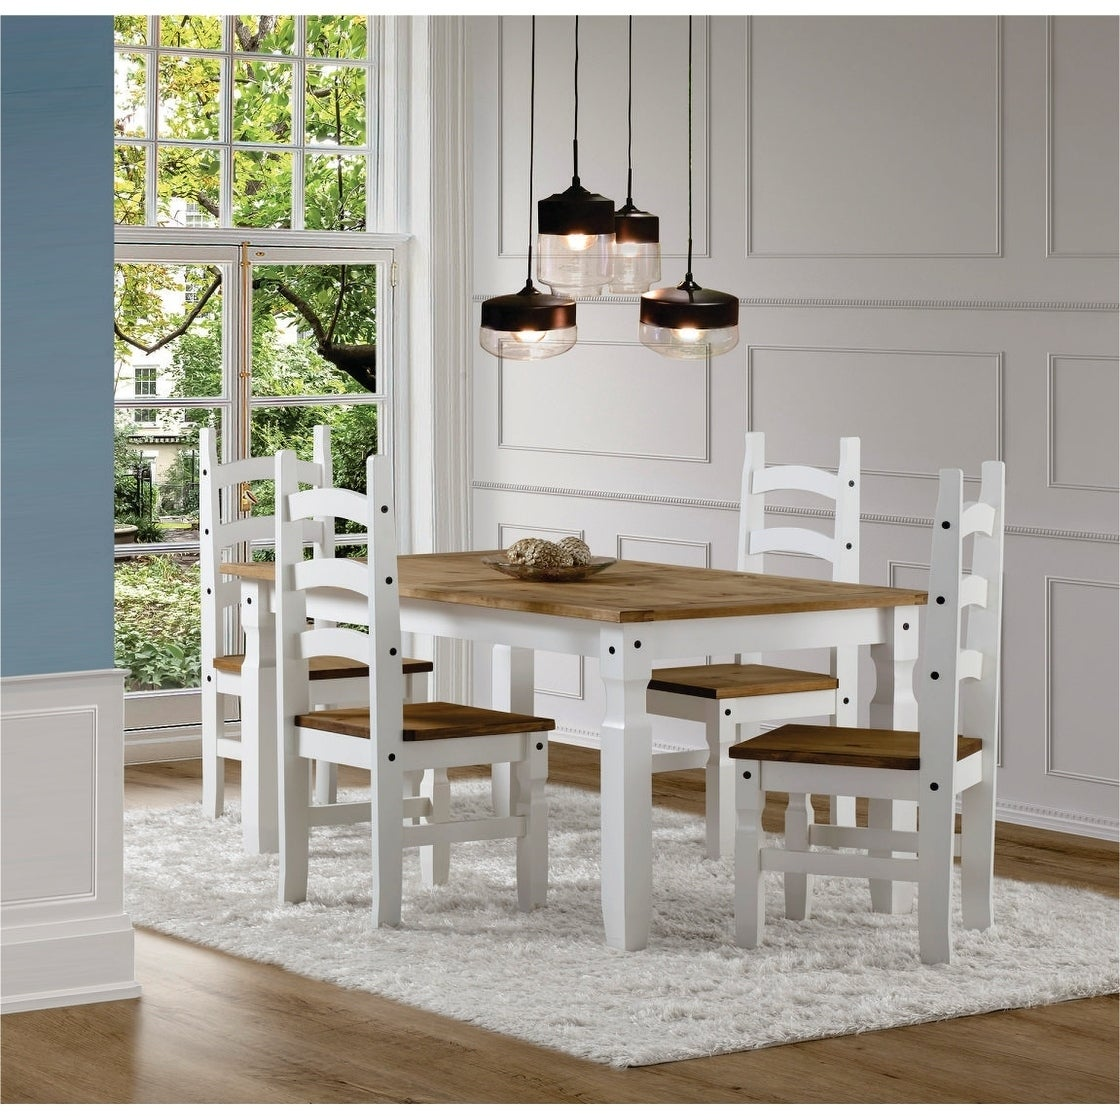 Peachy Corona 5 Piece White Wood Dining Room Set Gmtry Best Dining Table And Chair Ideas Images Gmtryco